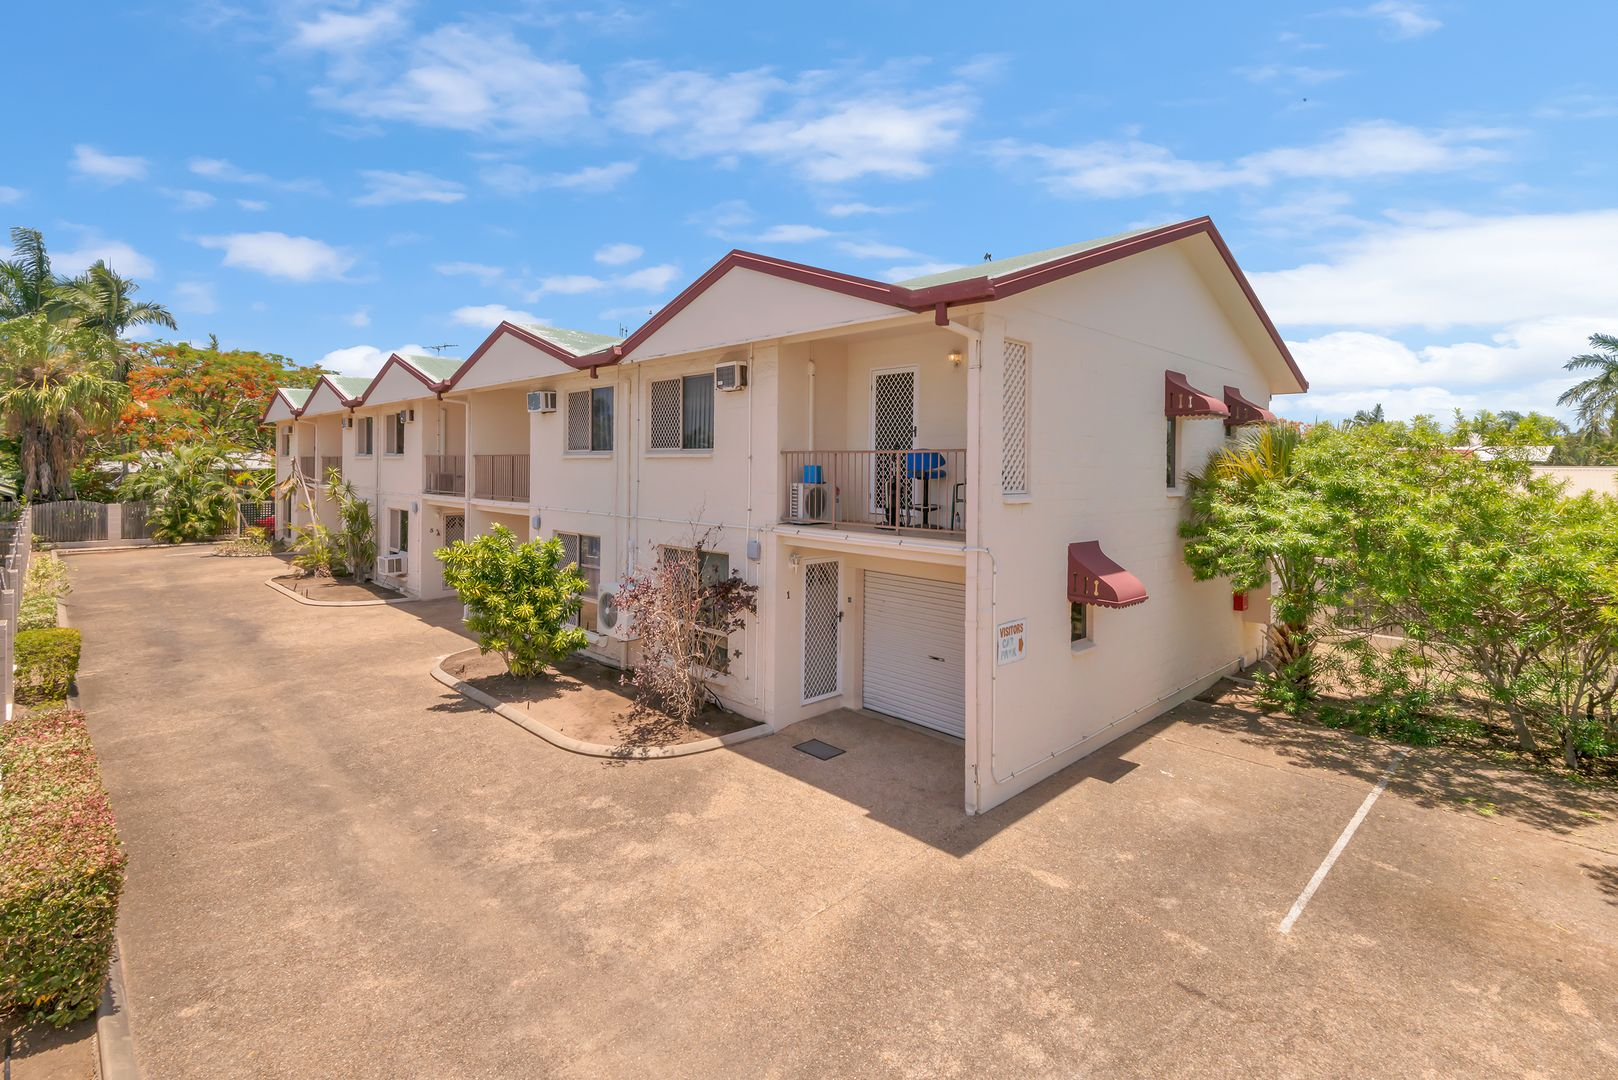 2/44 Lowth Street, Rosslea QLD 4812, Image 0